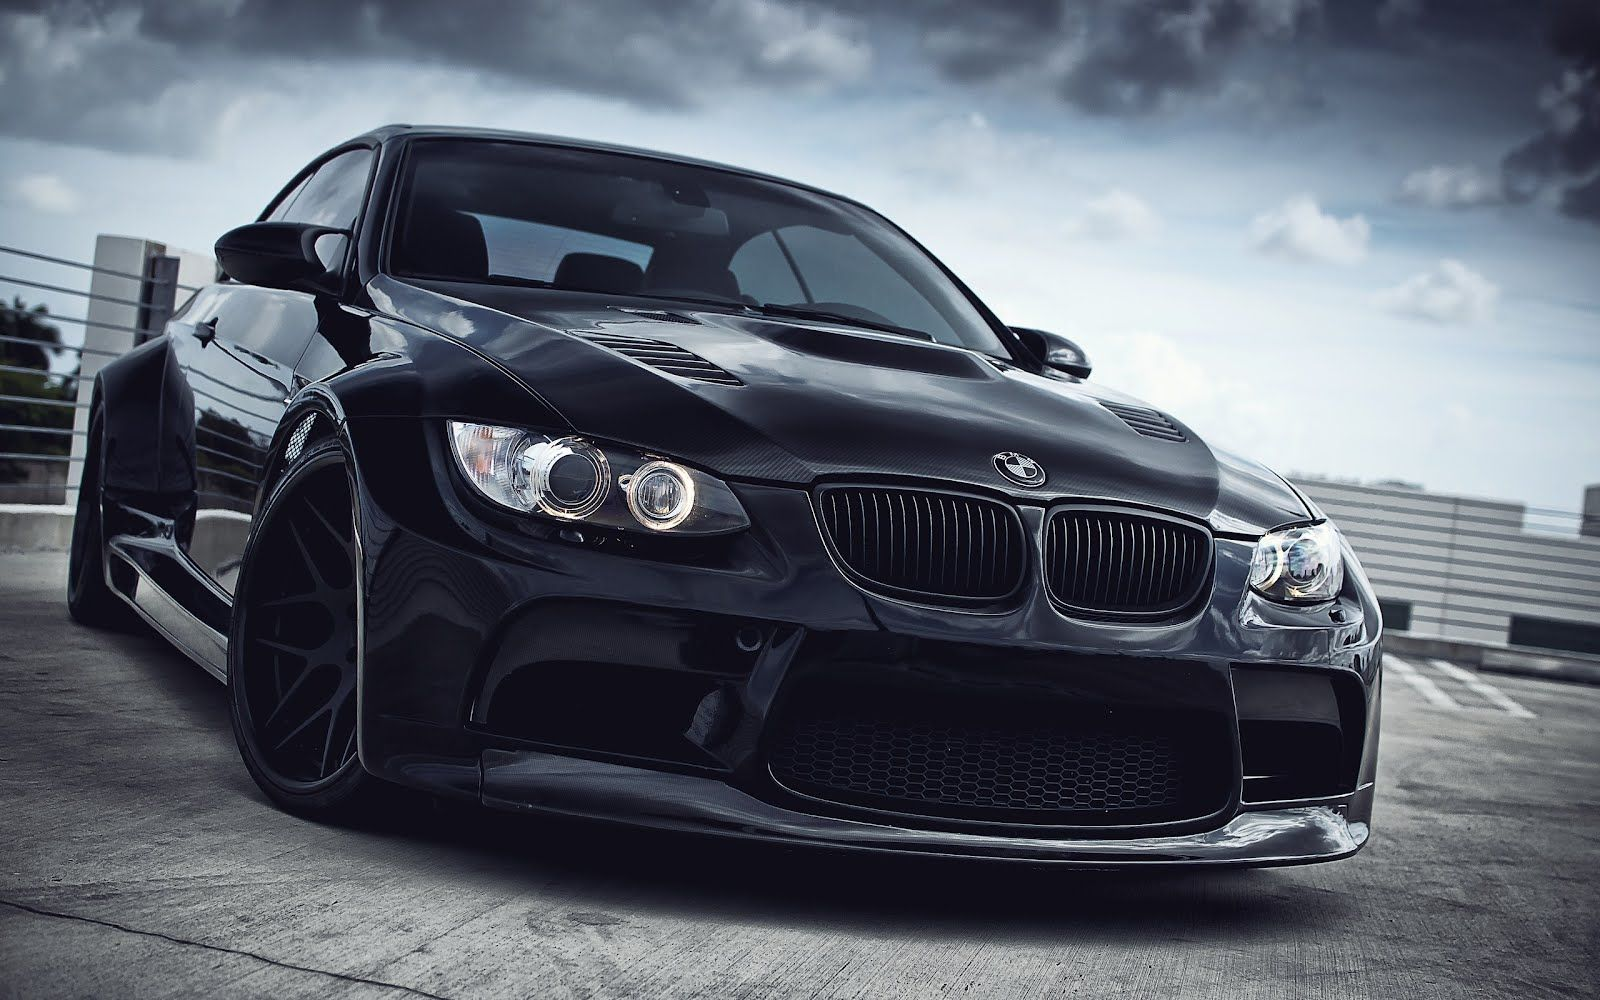 Wallpaper Bmw M3 E92 Hd Wallpaper Super Car Racing Bmw Black